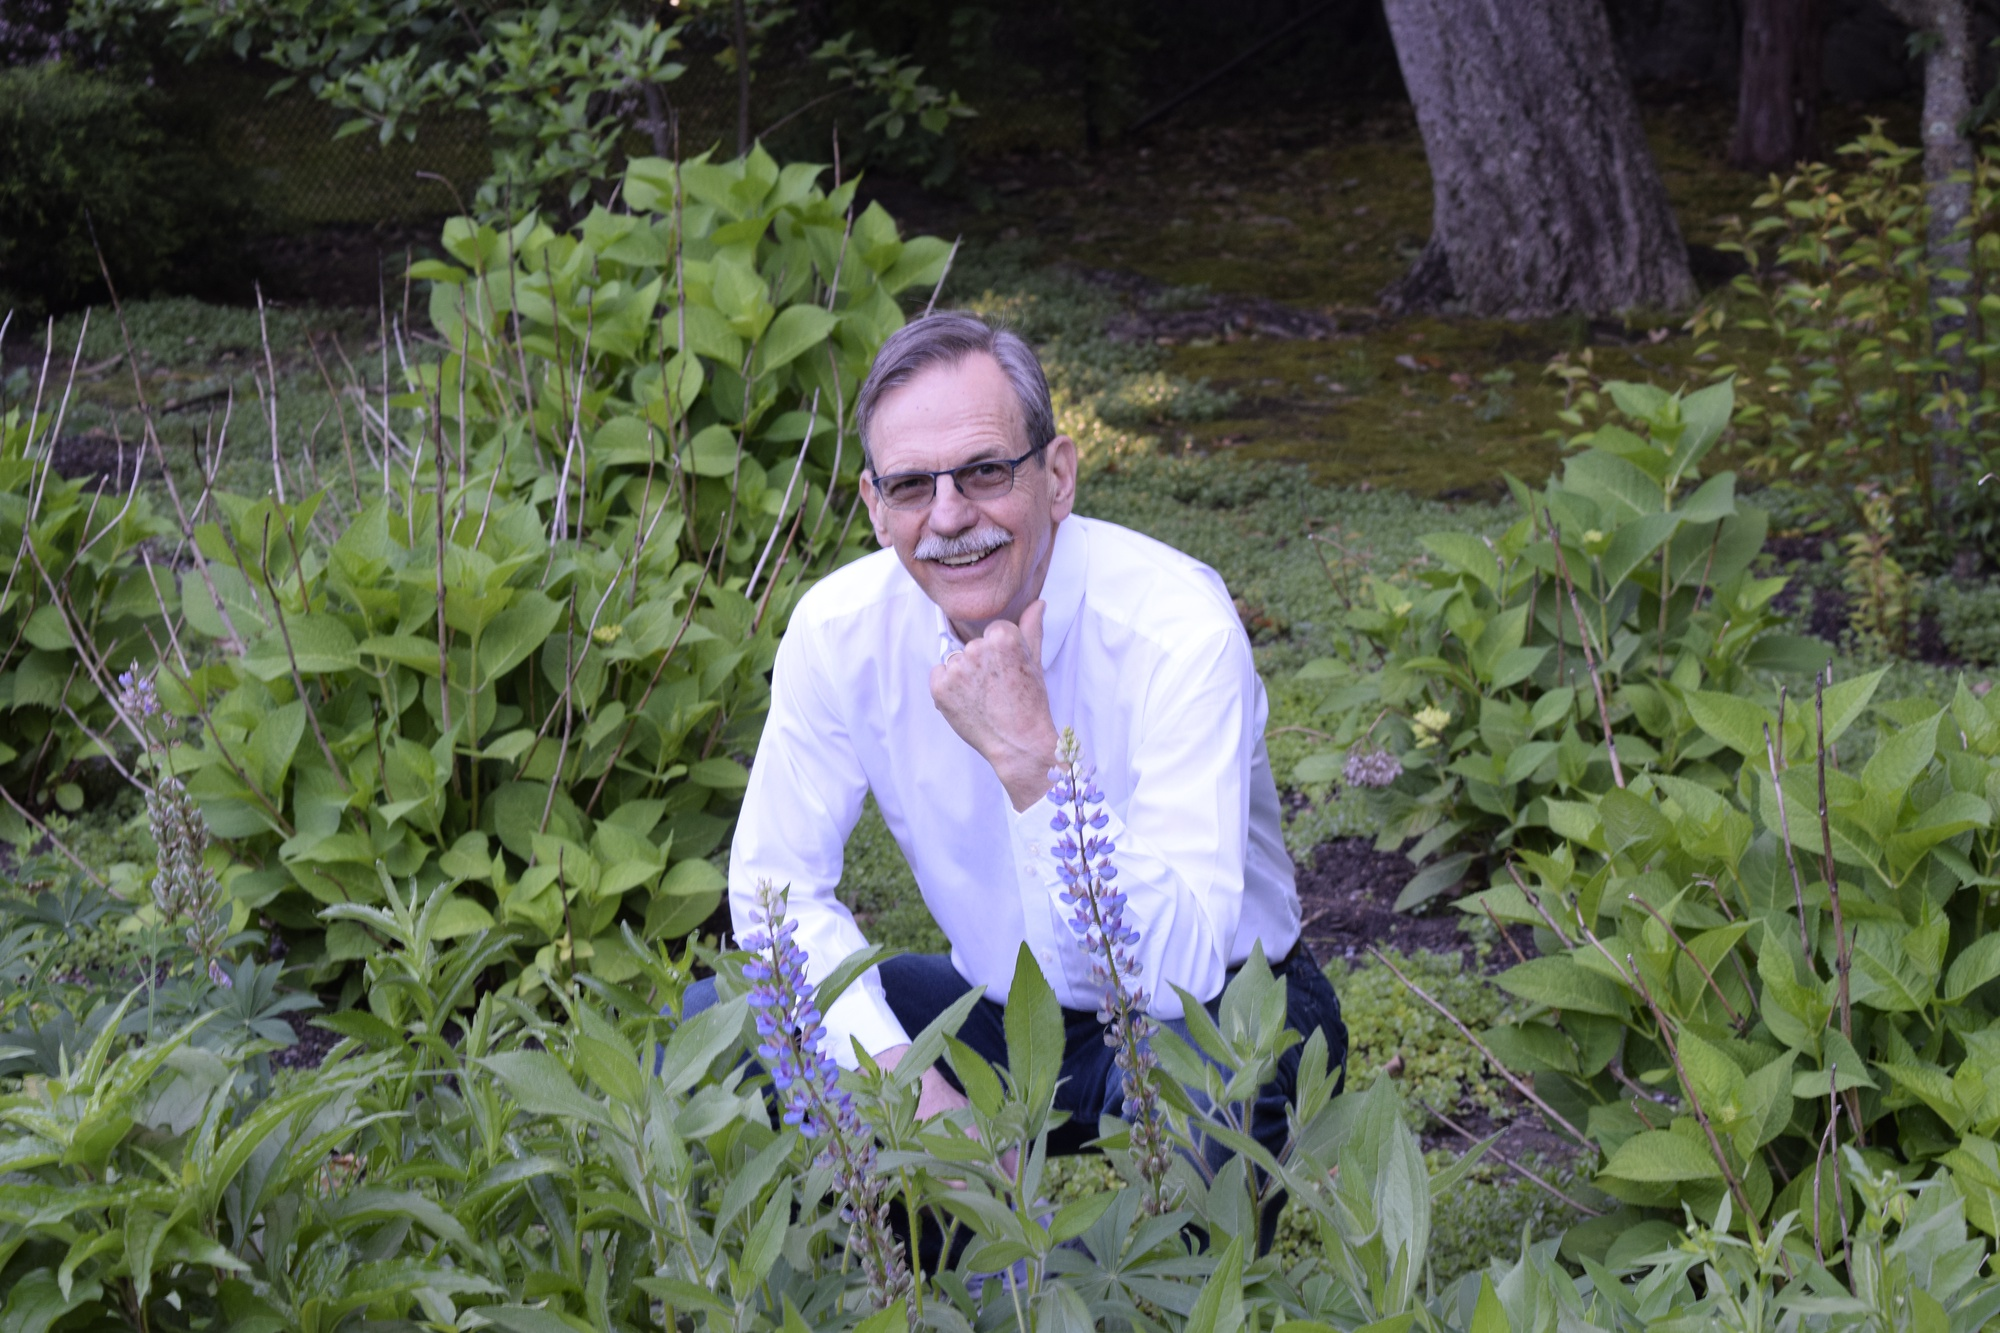 Timothy Springer, a professor at Harvard Medical School and founding investor in Moderna, pictured in his home garden.